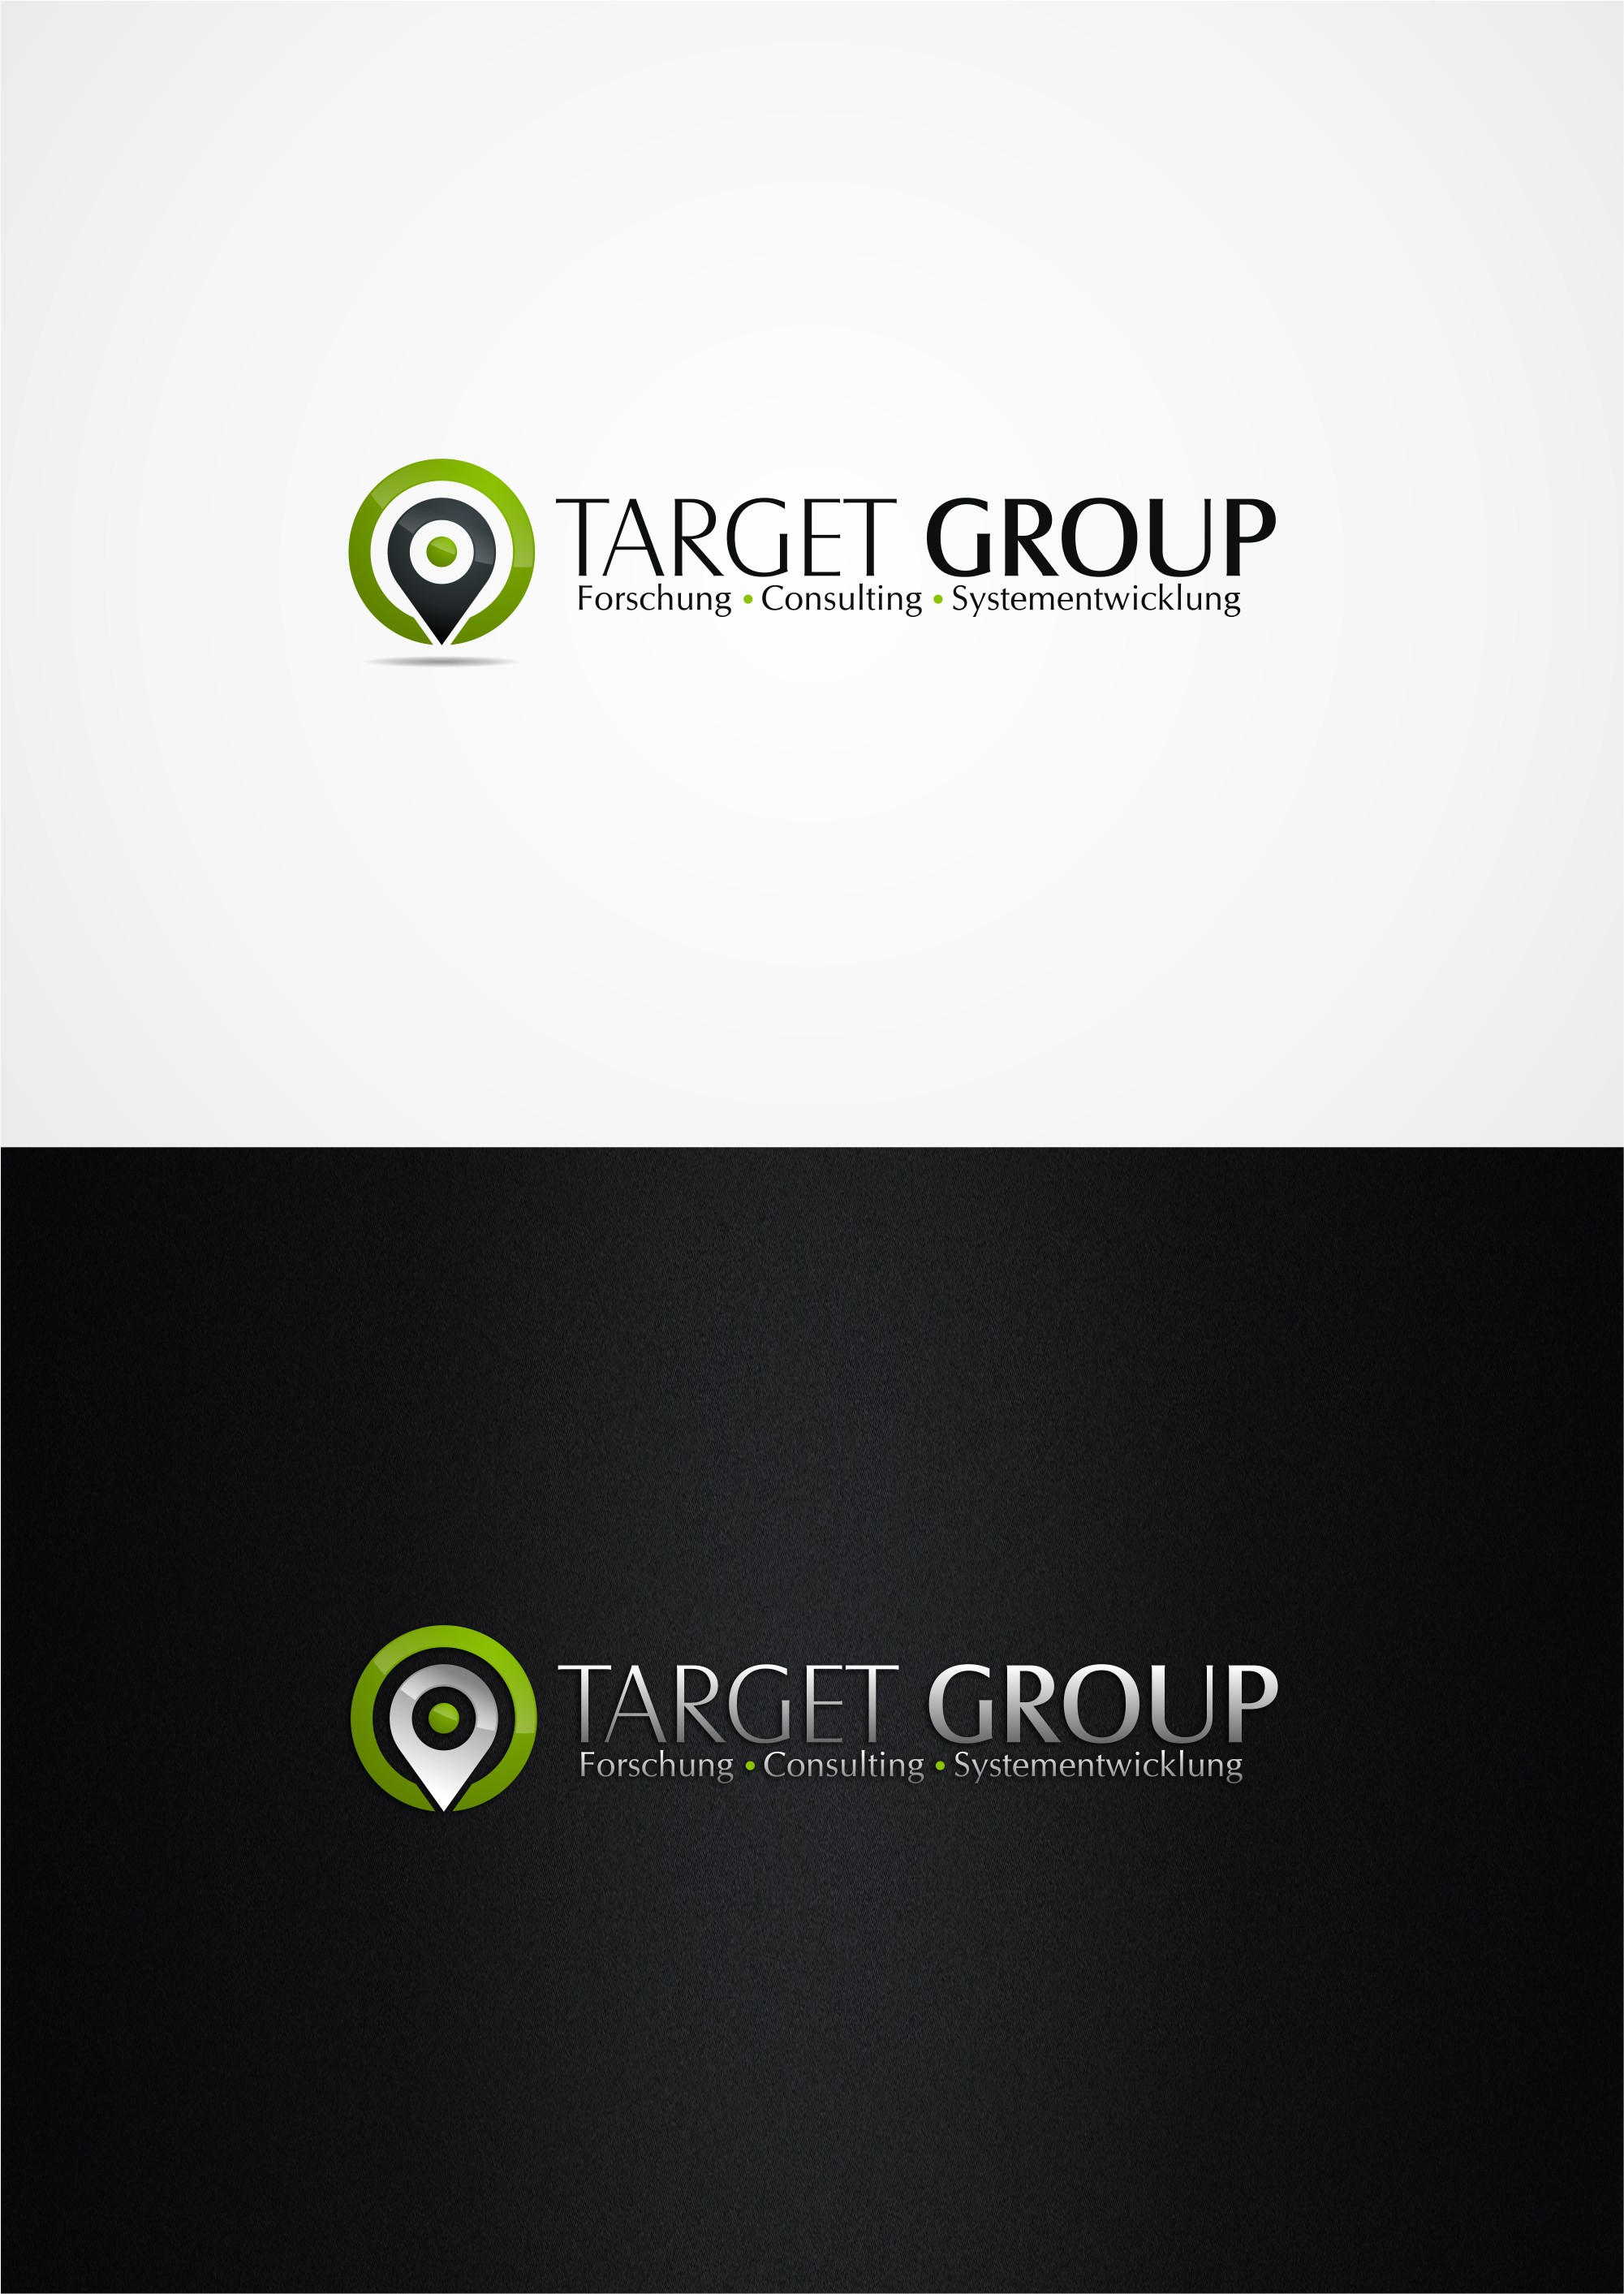 Outstanding logo for the market research institution targetgroup!